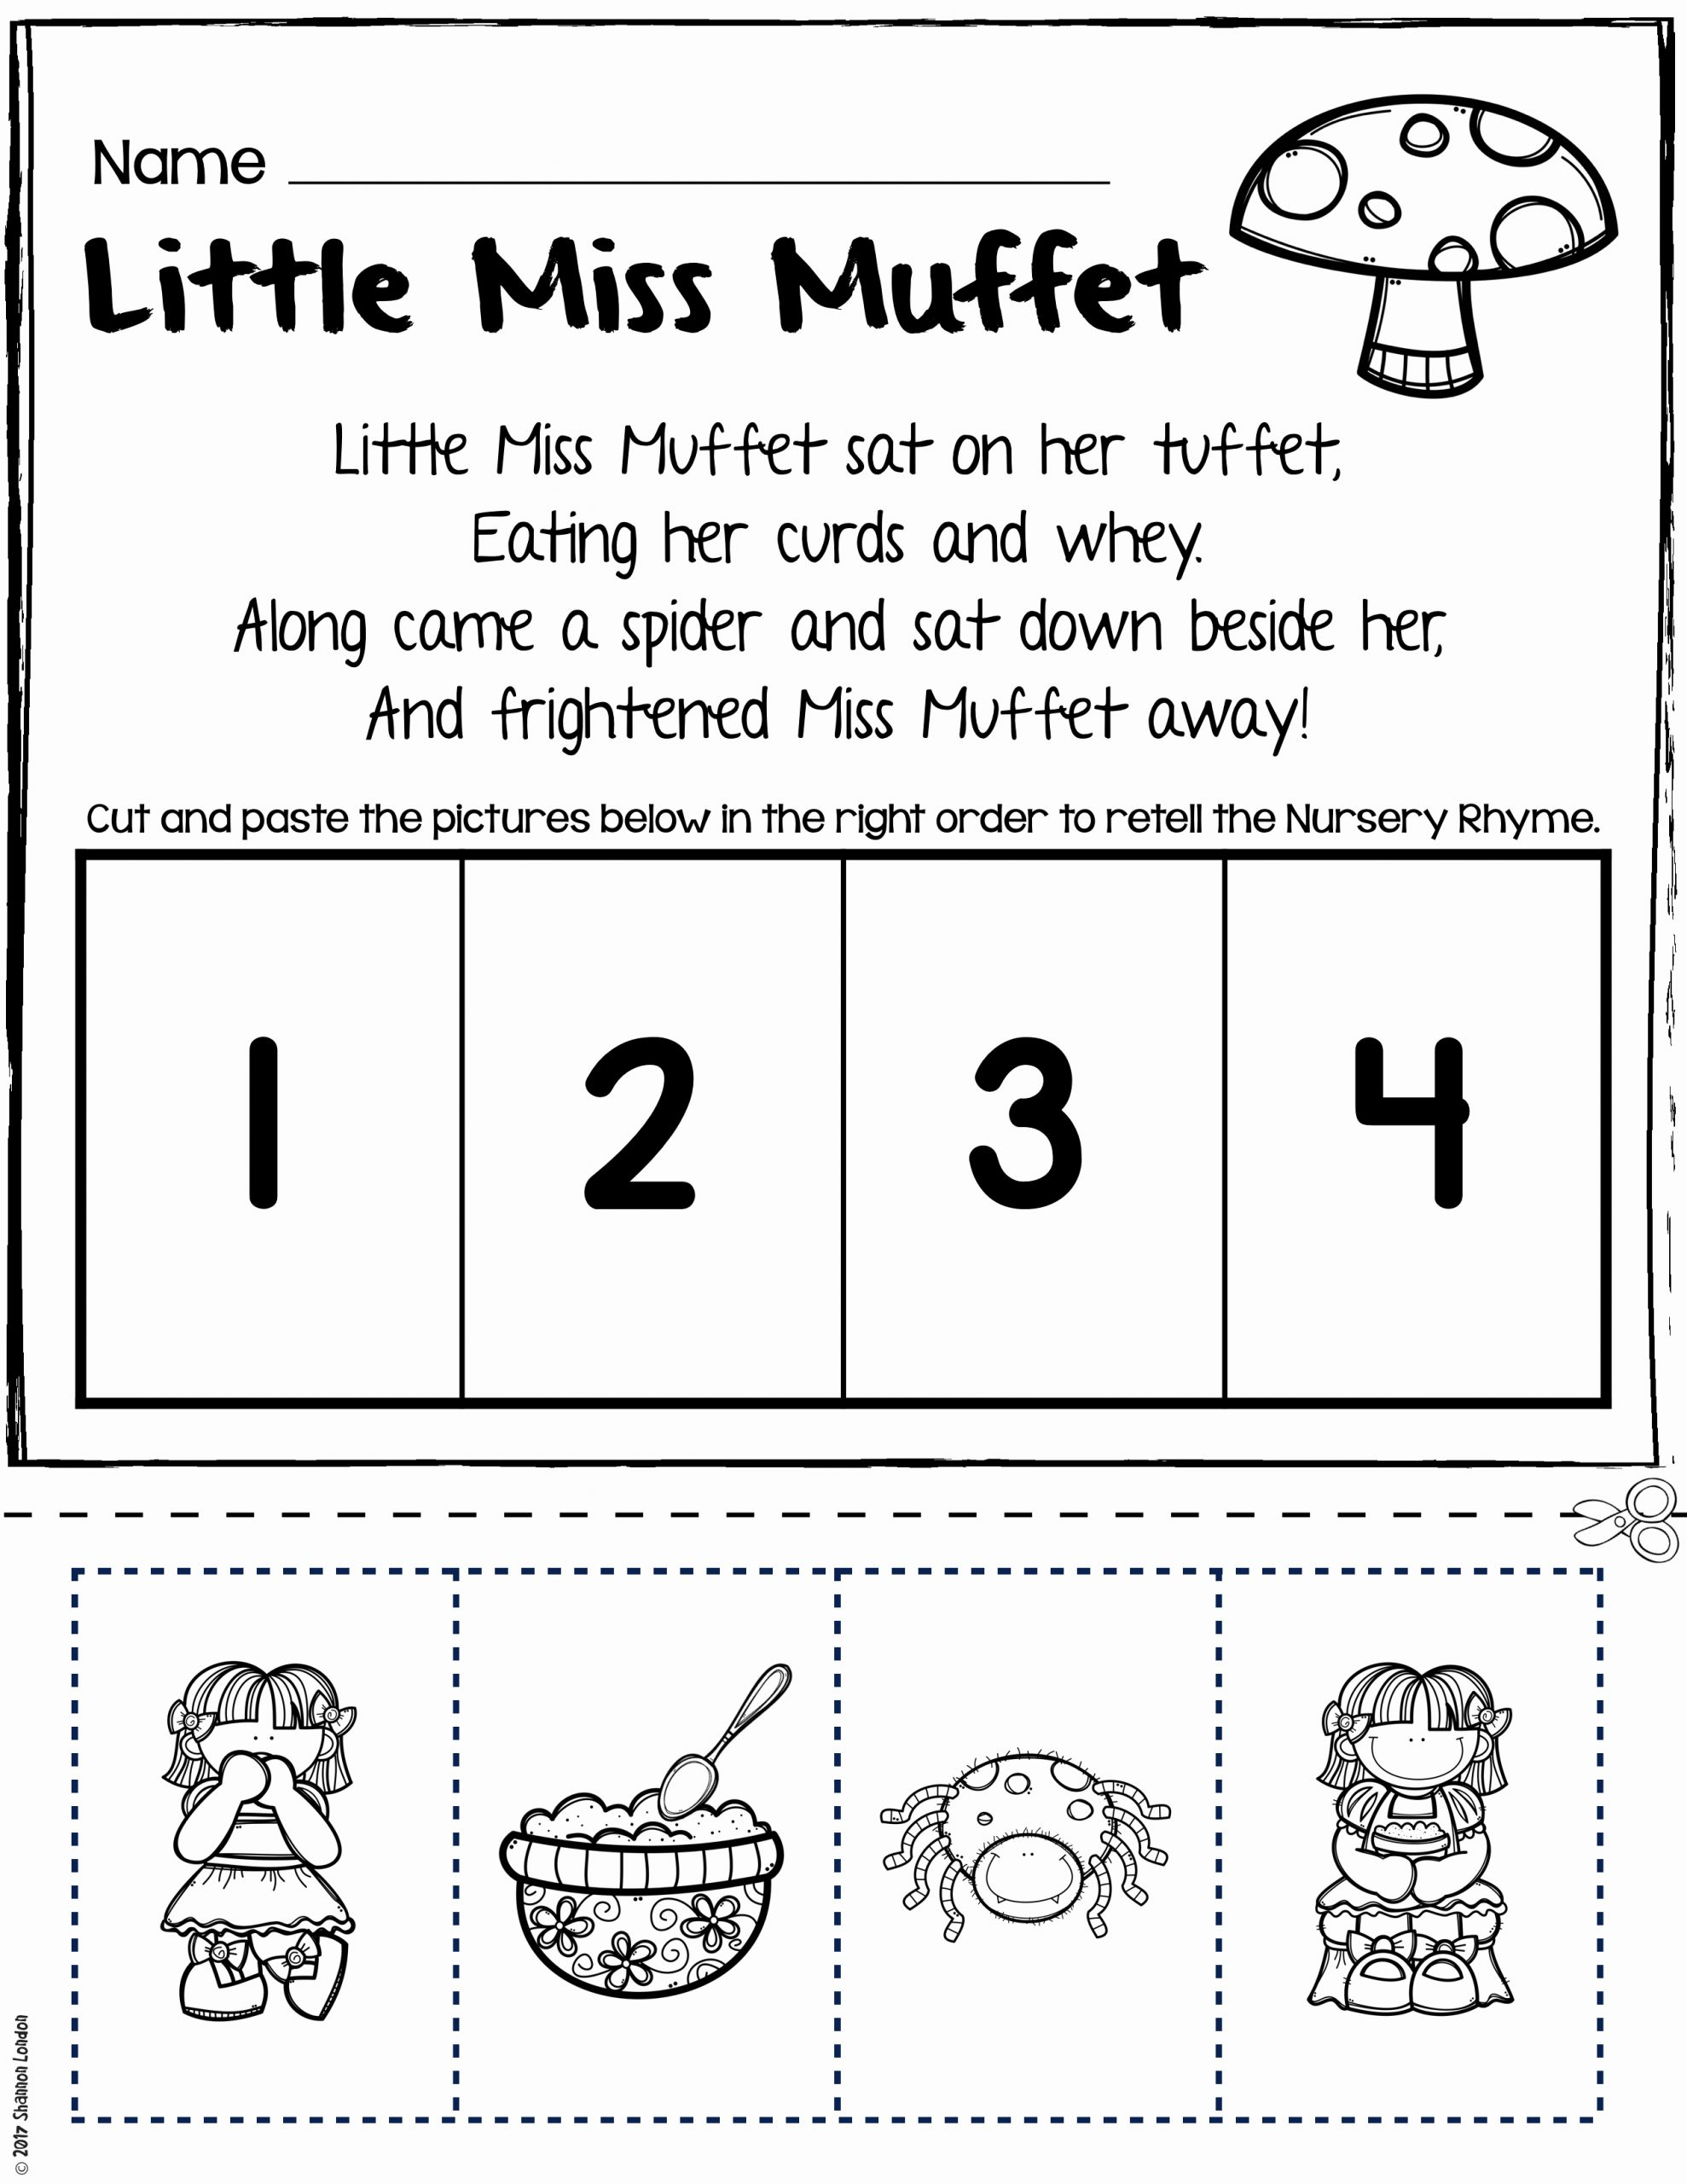 Kindergarten Sequence Worksheets Inspirational Nursery Rhymes Worksheets for Story Retelling Practice